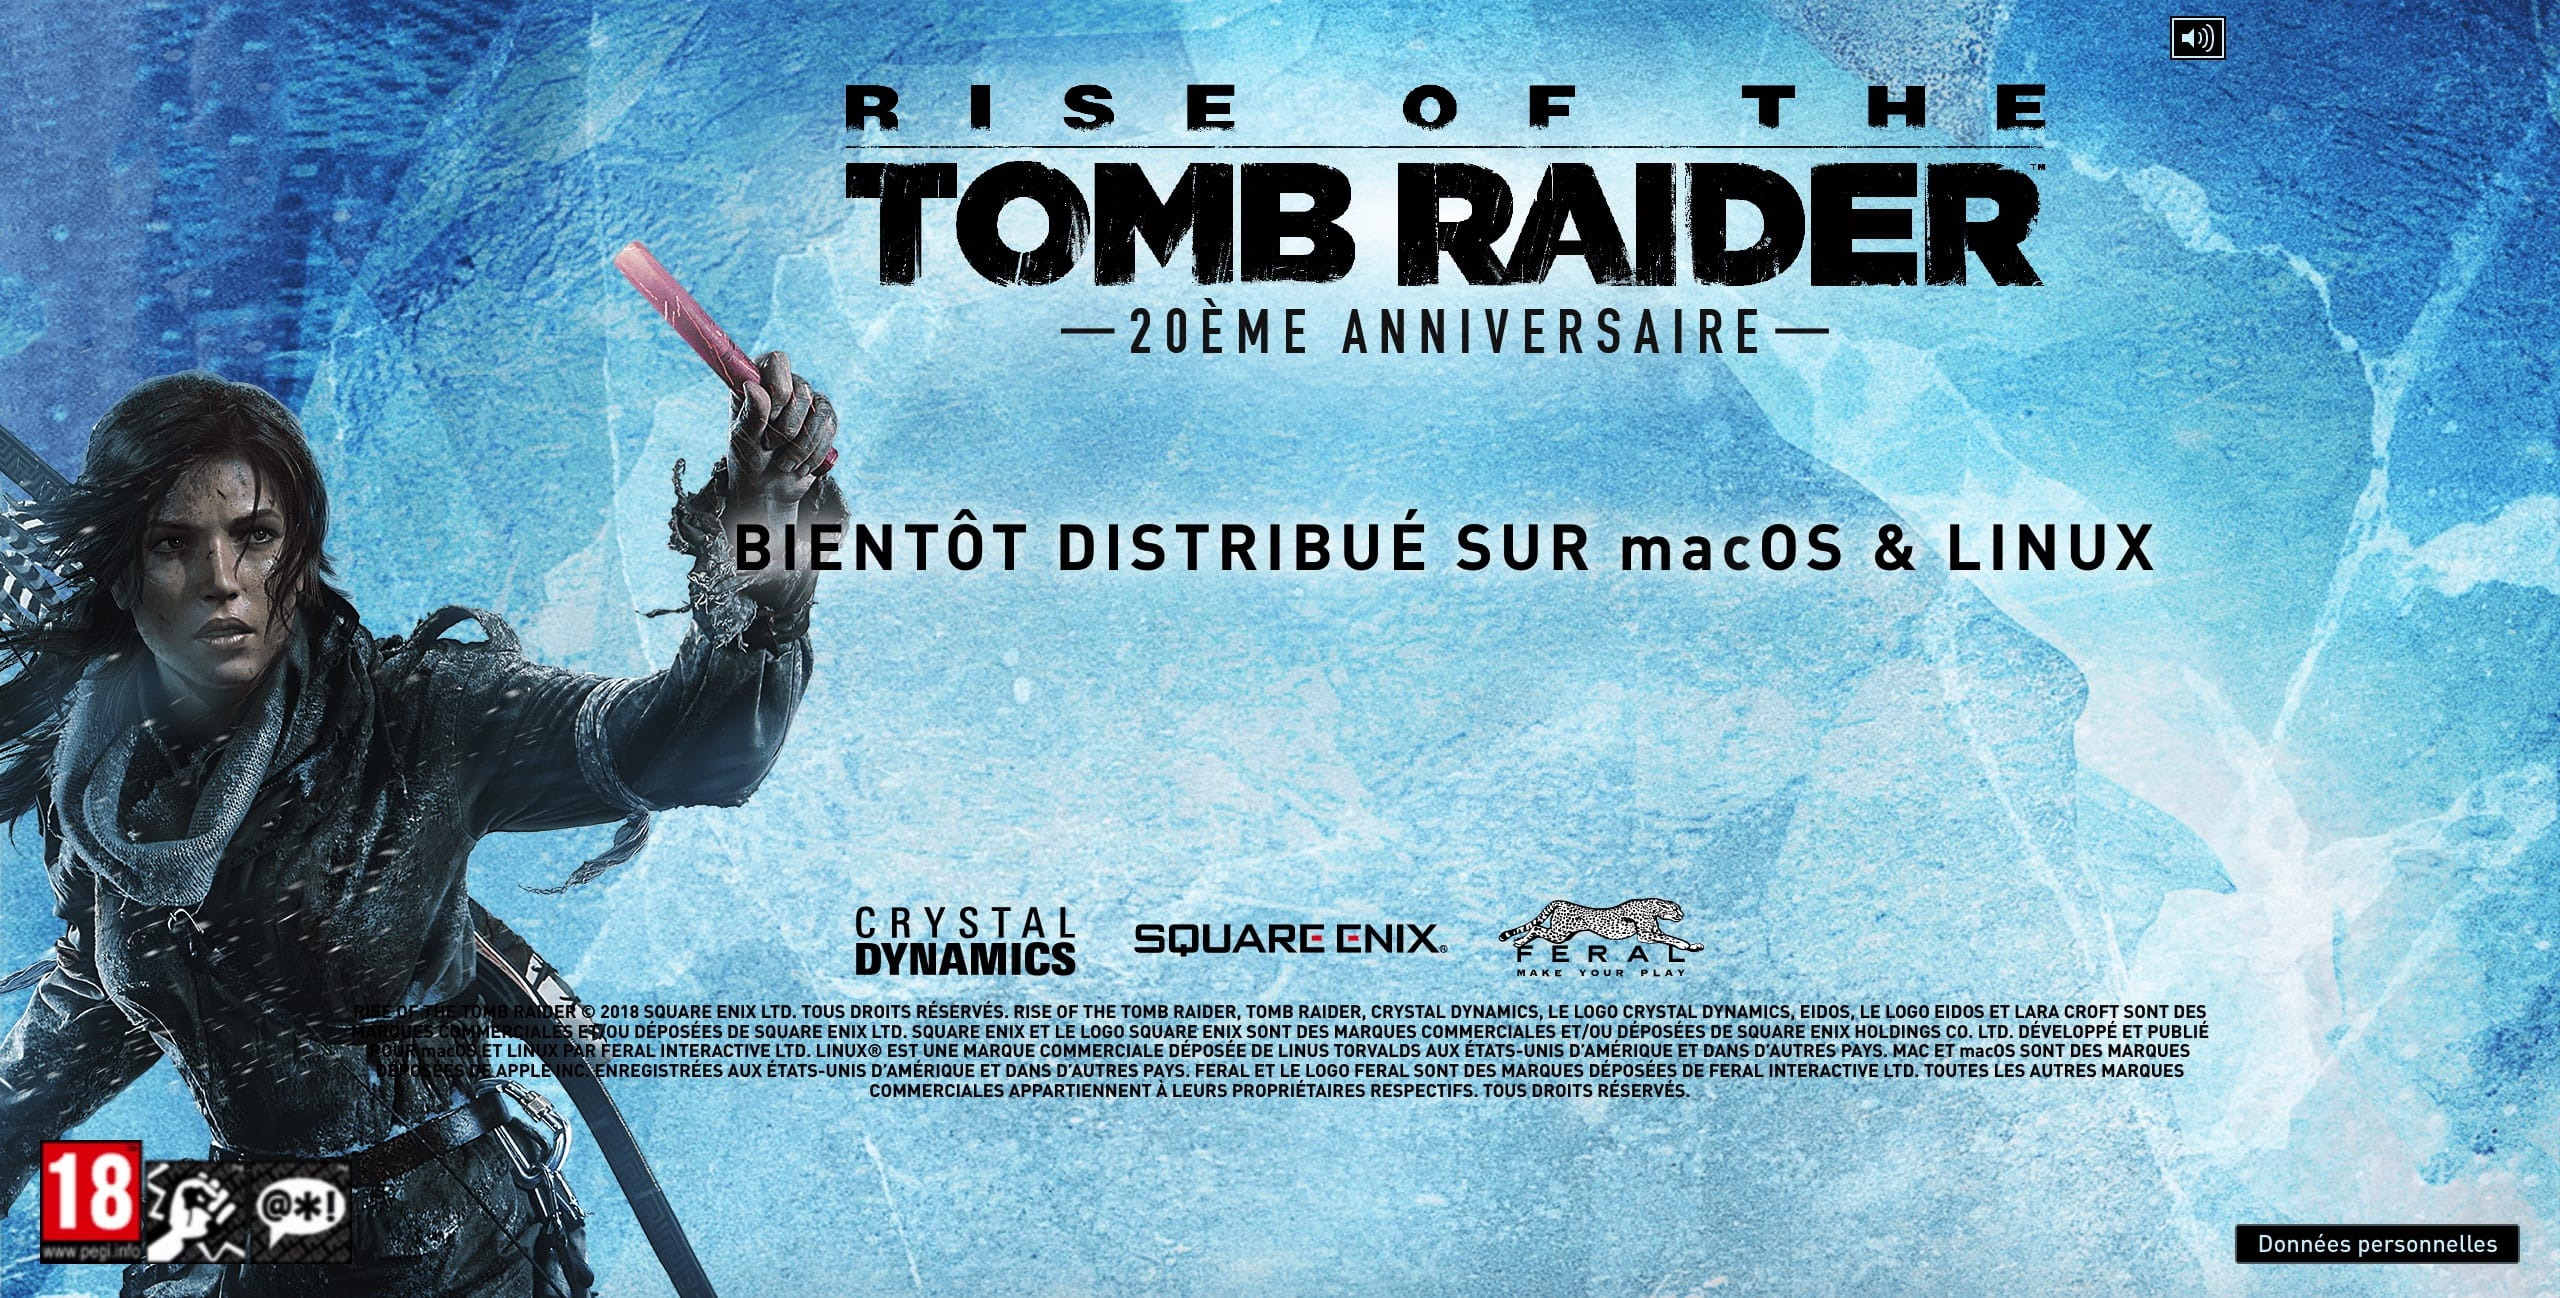 Rise of the Tomb Raider bientôt disponible sous Linux et macOS